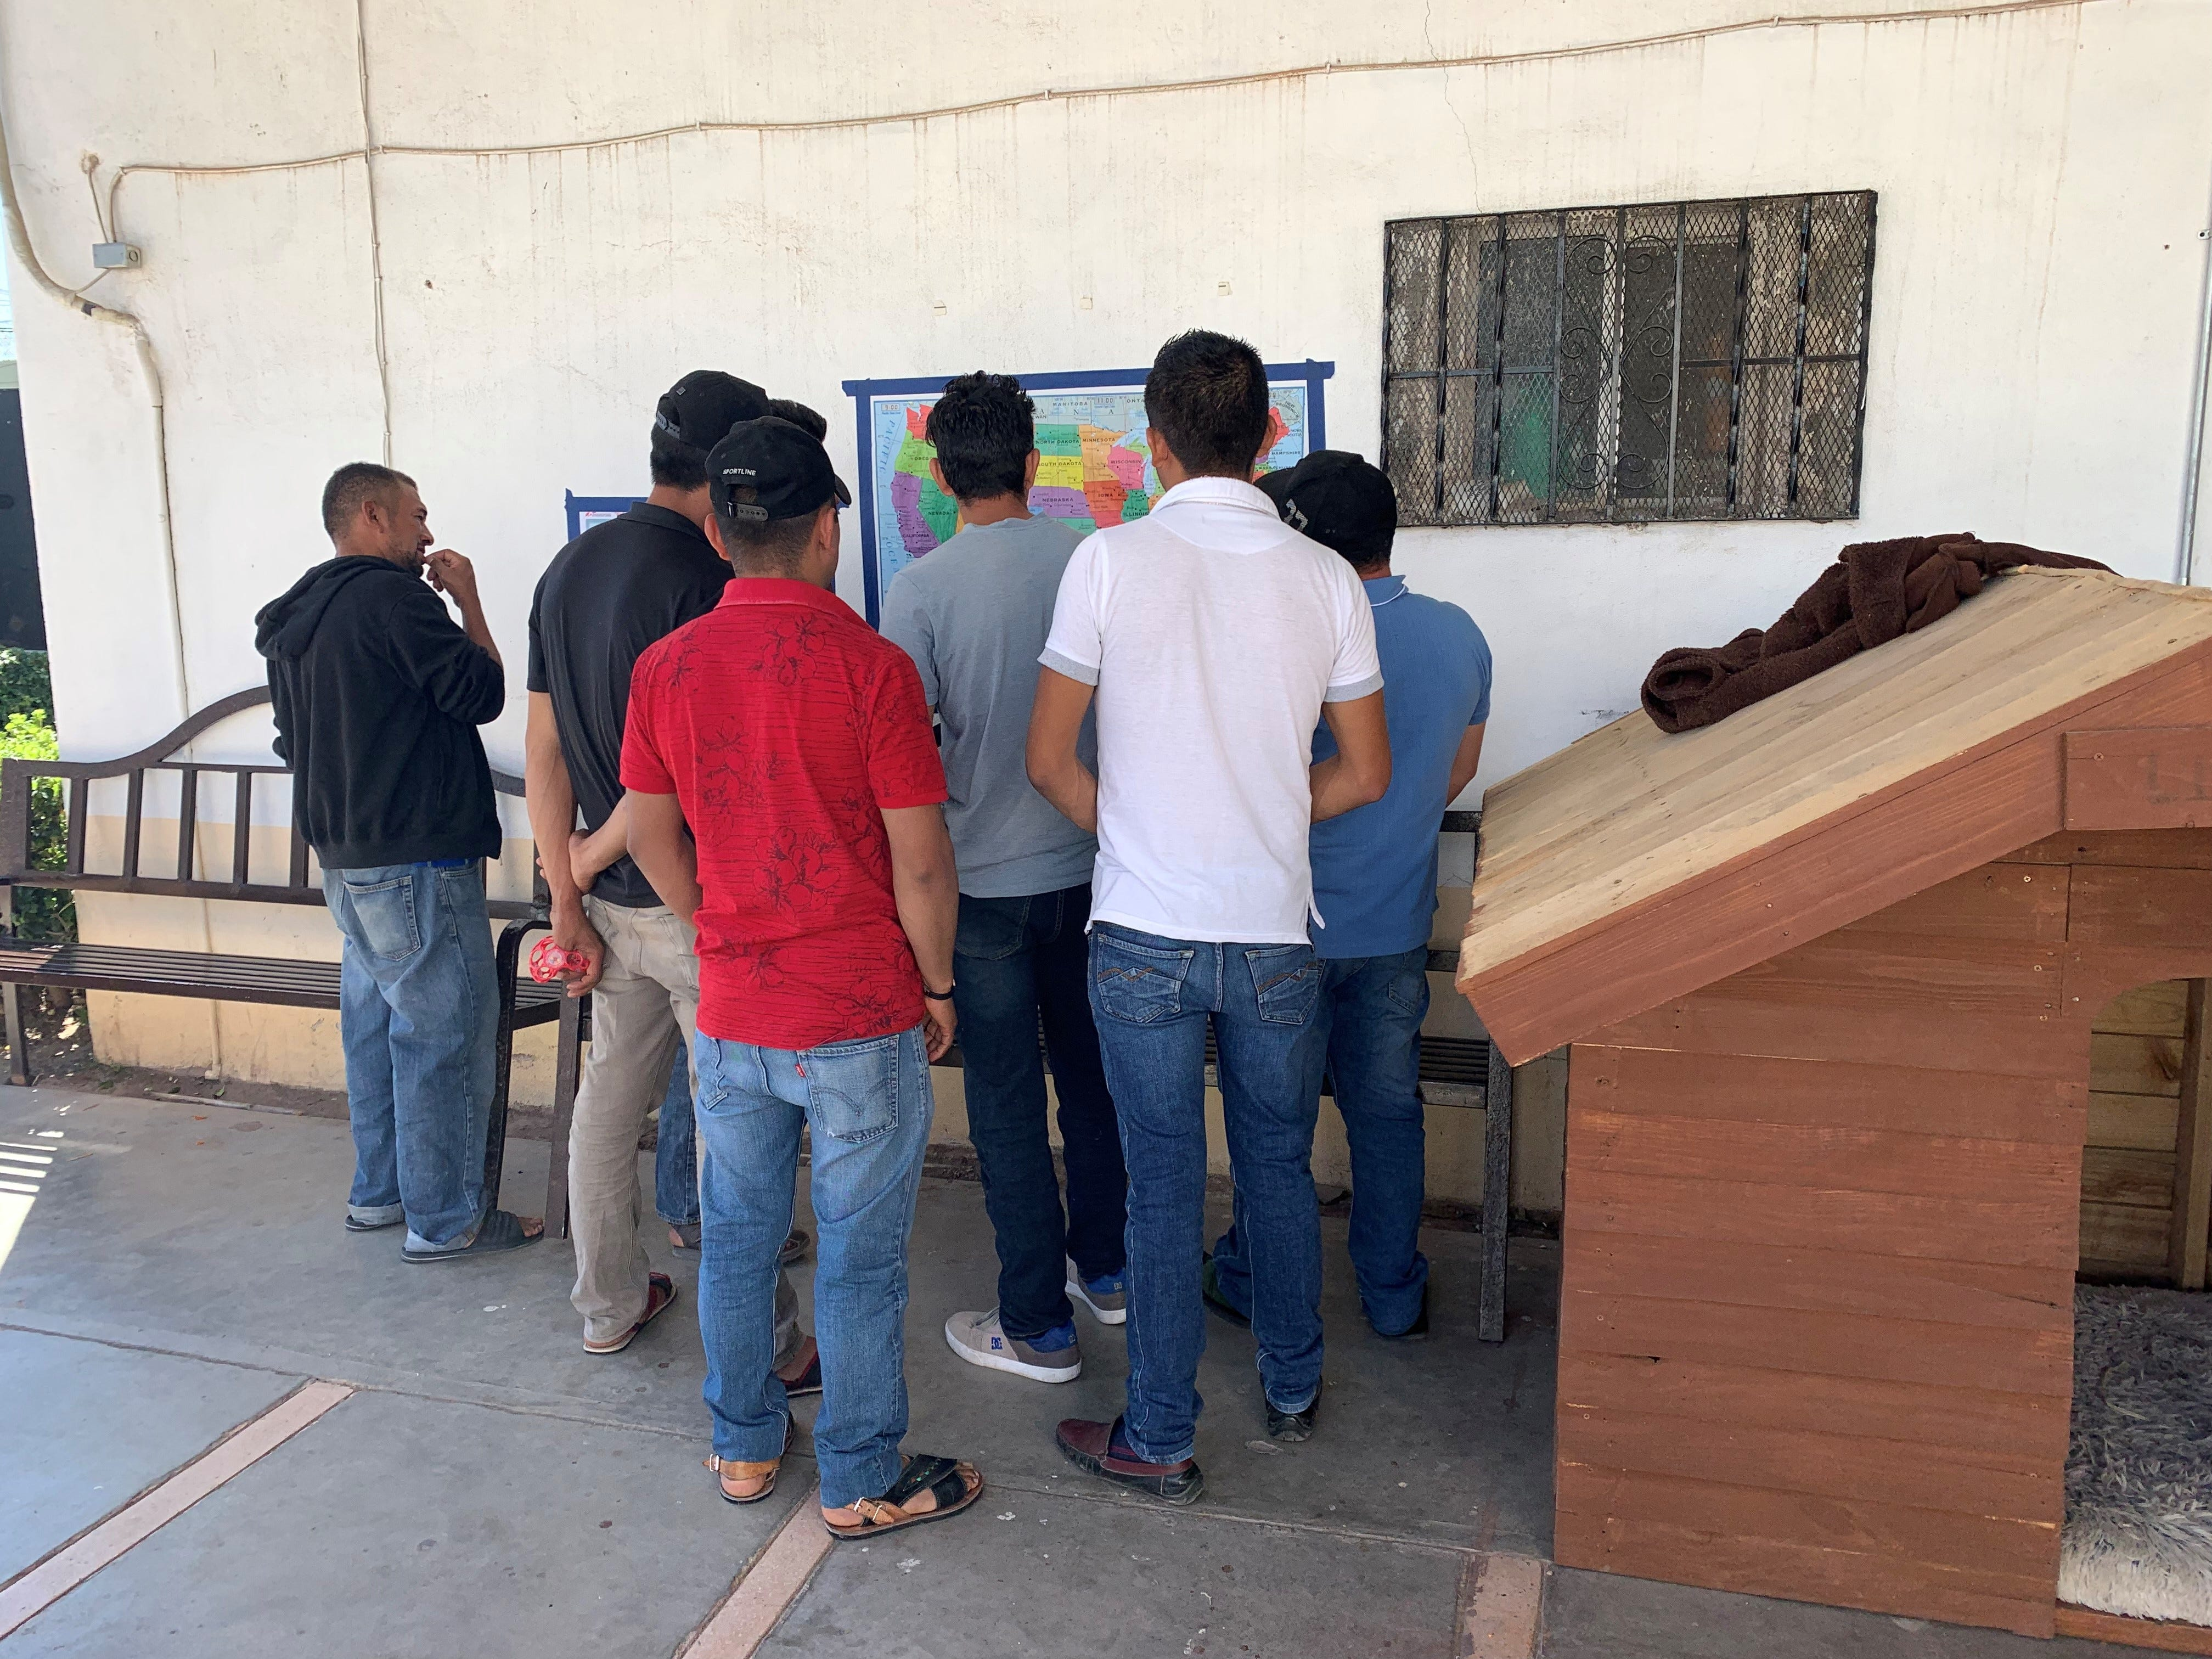 A group of migrant men look at the map of the U.S. placed inside the CAME shelter in Agua Prieta, Sonora, on March 28, 2019.